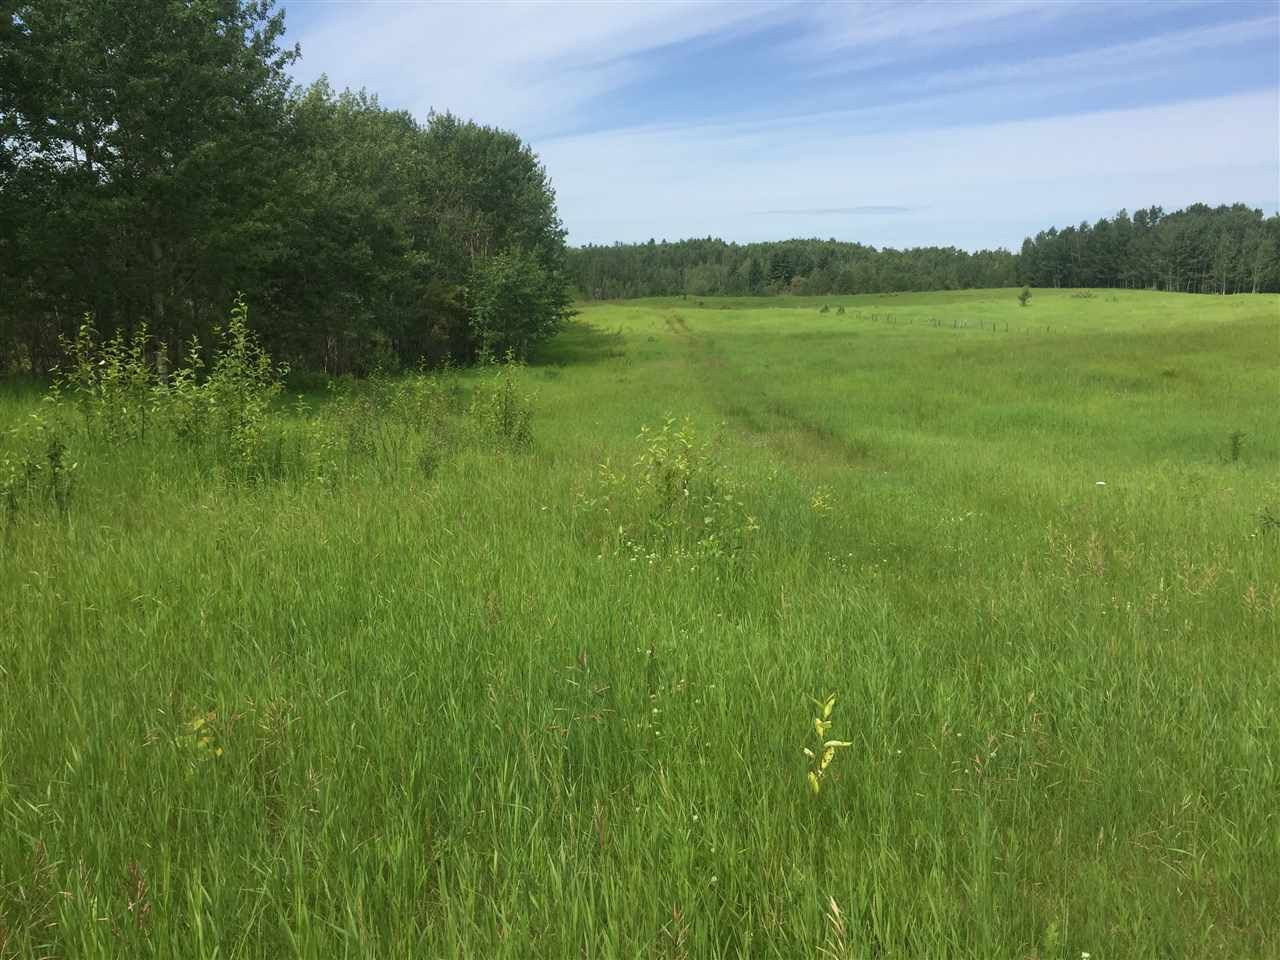 Main Photo: TWP RD 550 RGE RD 203: Rural Strathcona County Rural Land/Vacant Lot for sale : MLS®# E4220584